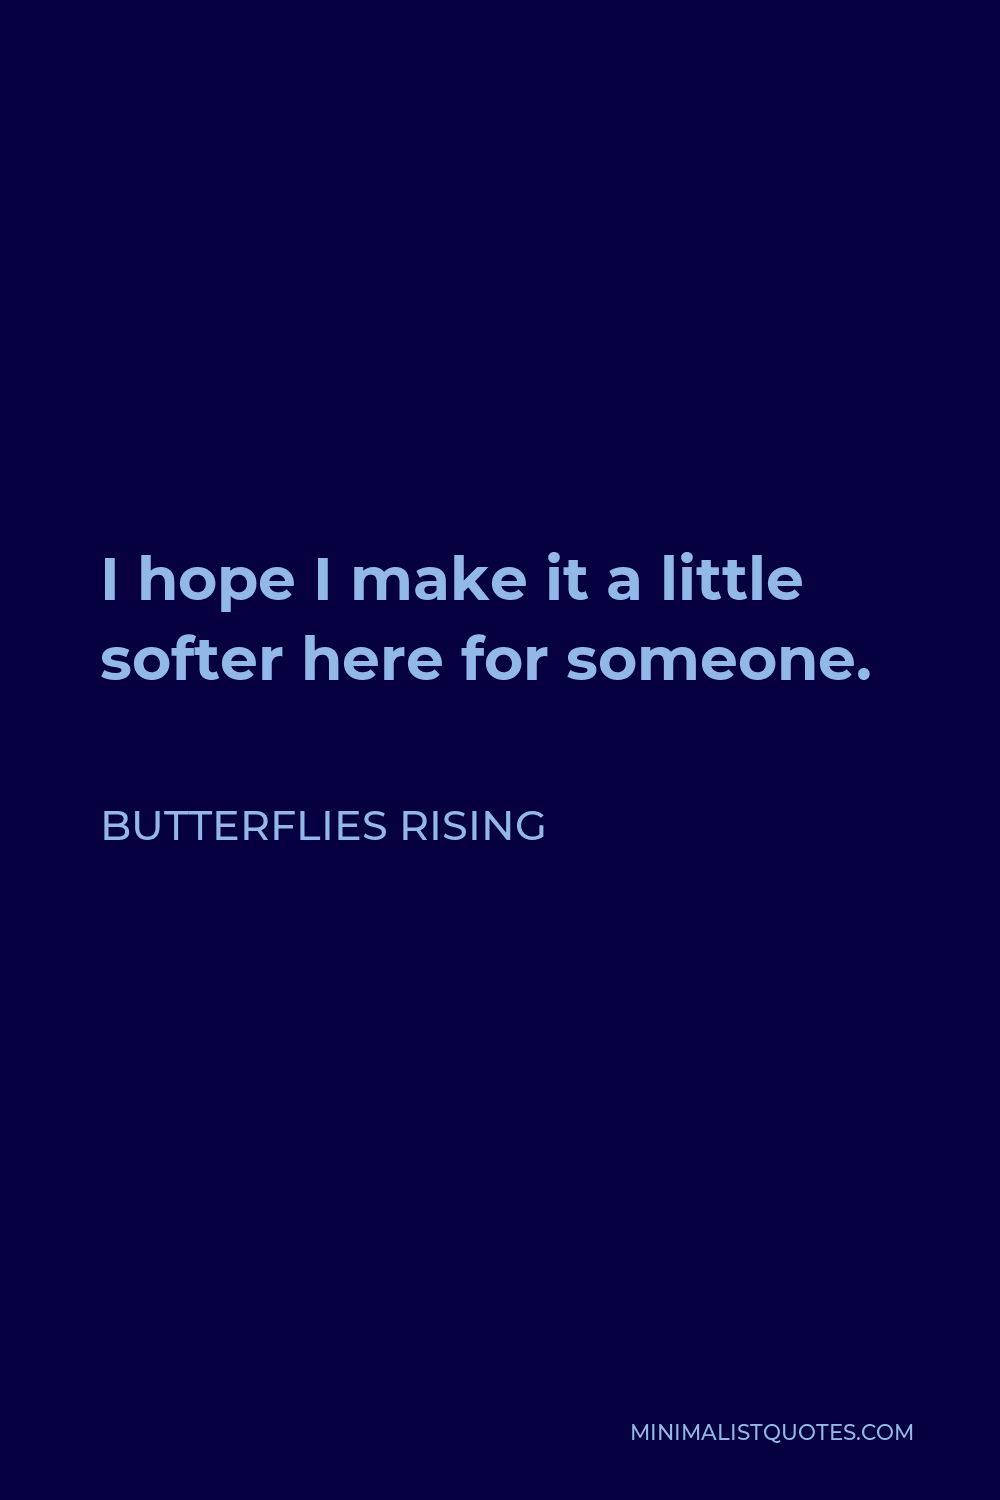 Butterflies Rising Quote - I hope I make it a little softer here for someone.